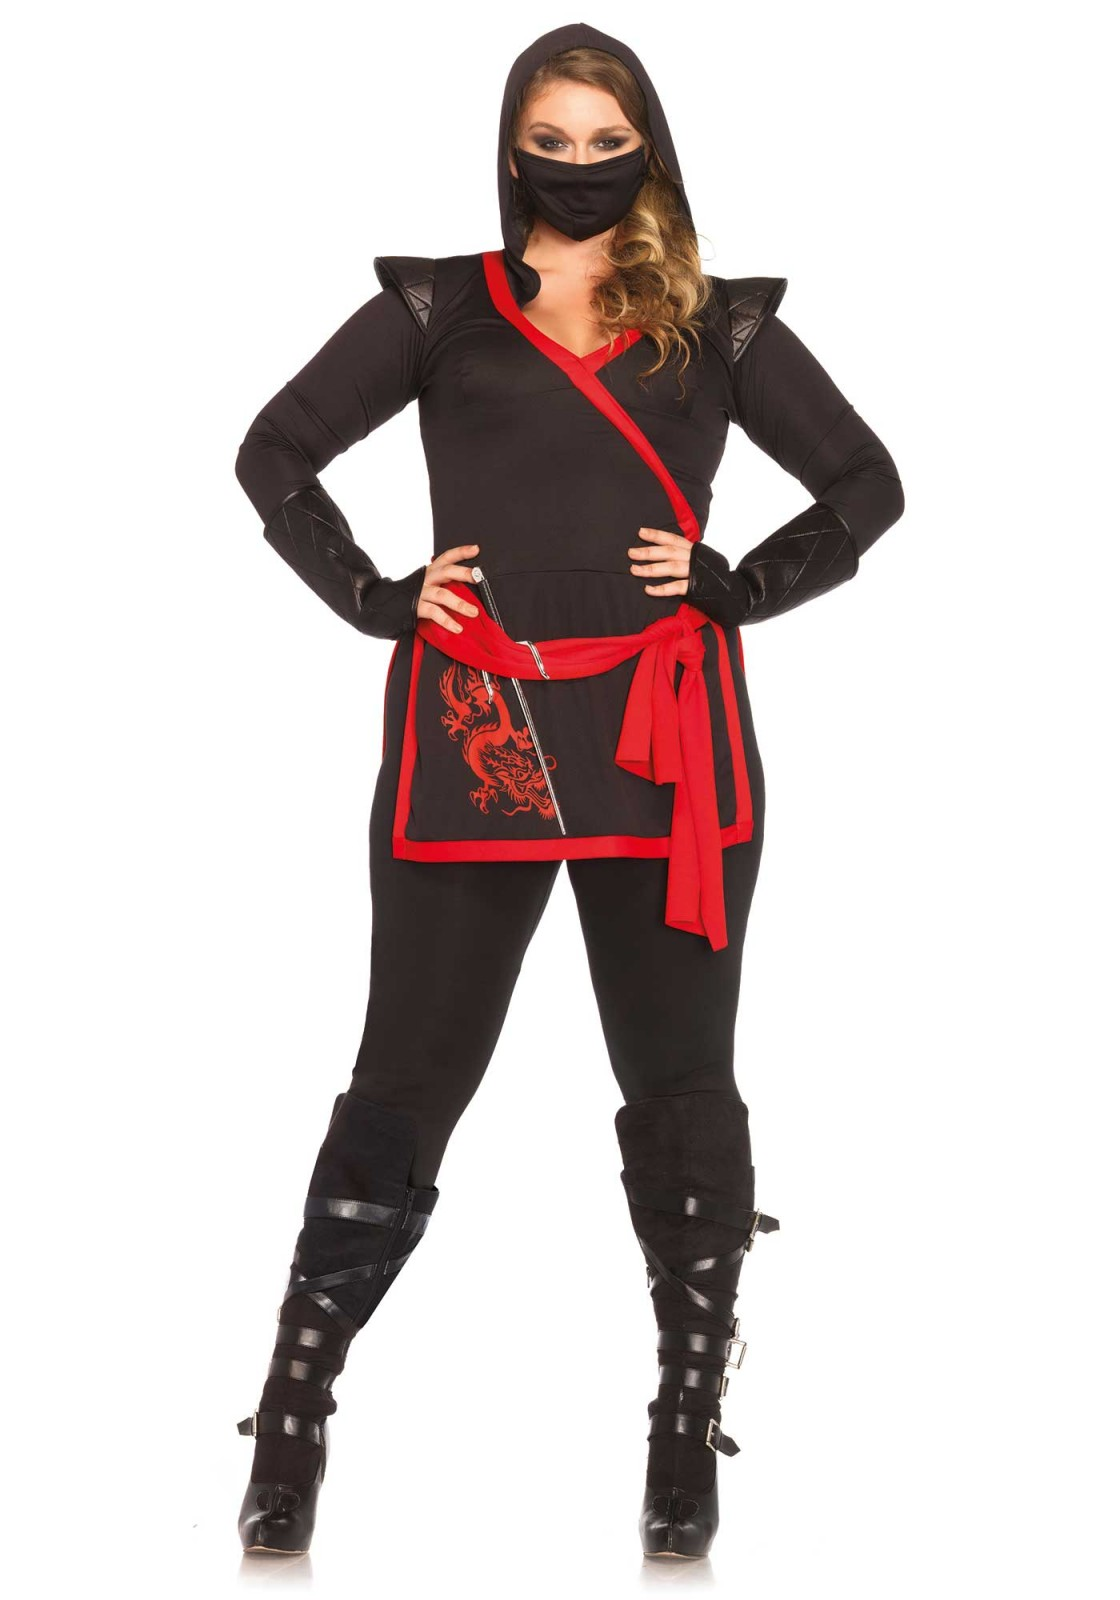 Plus Size Women's 4-piece Red & Black Ninja Costume